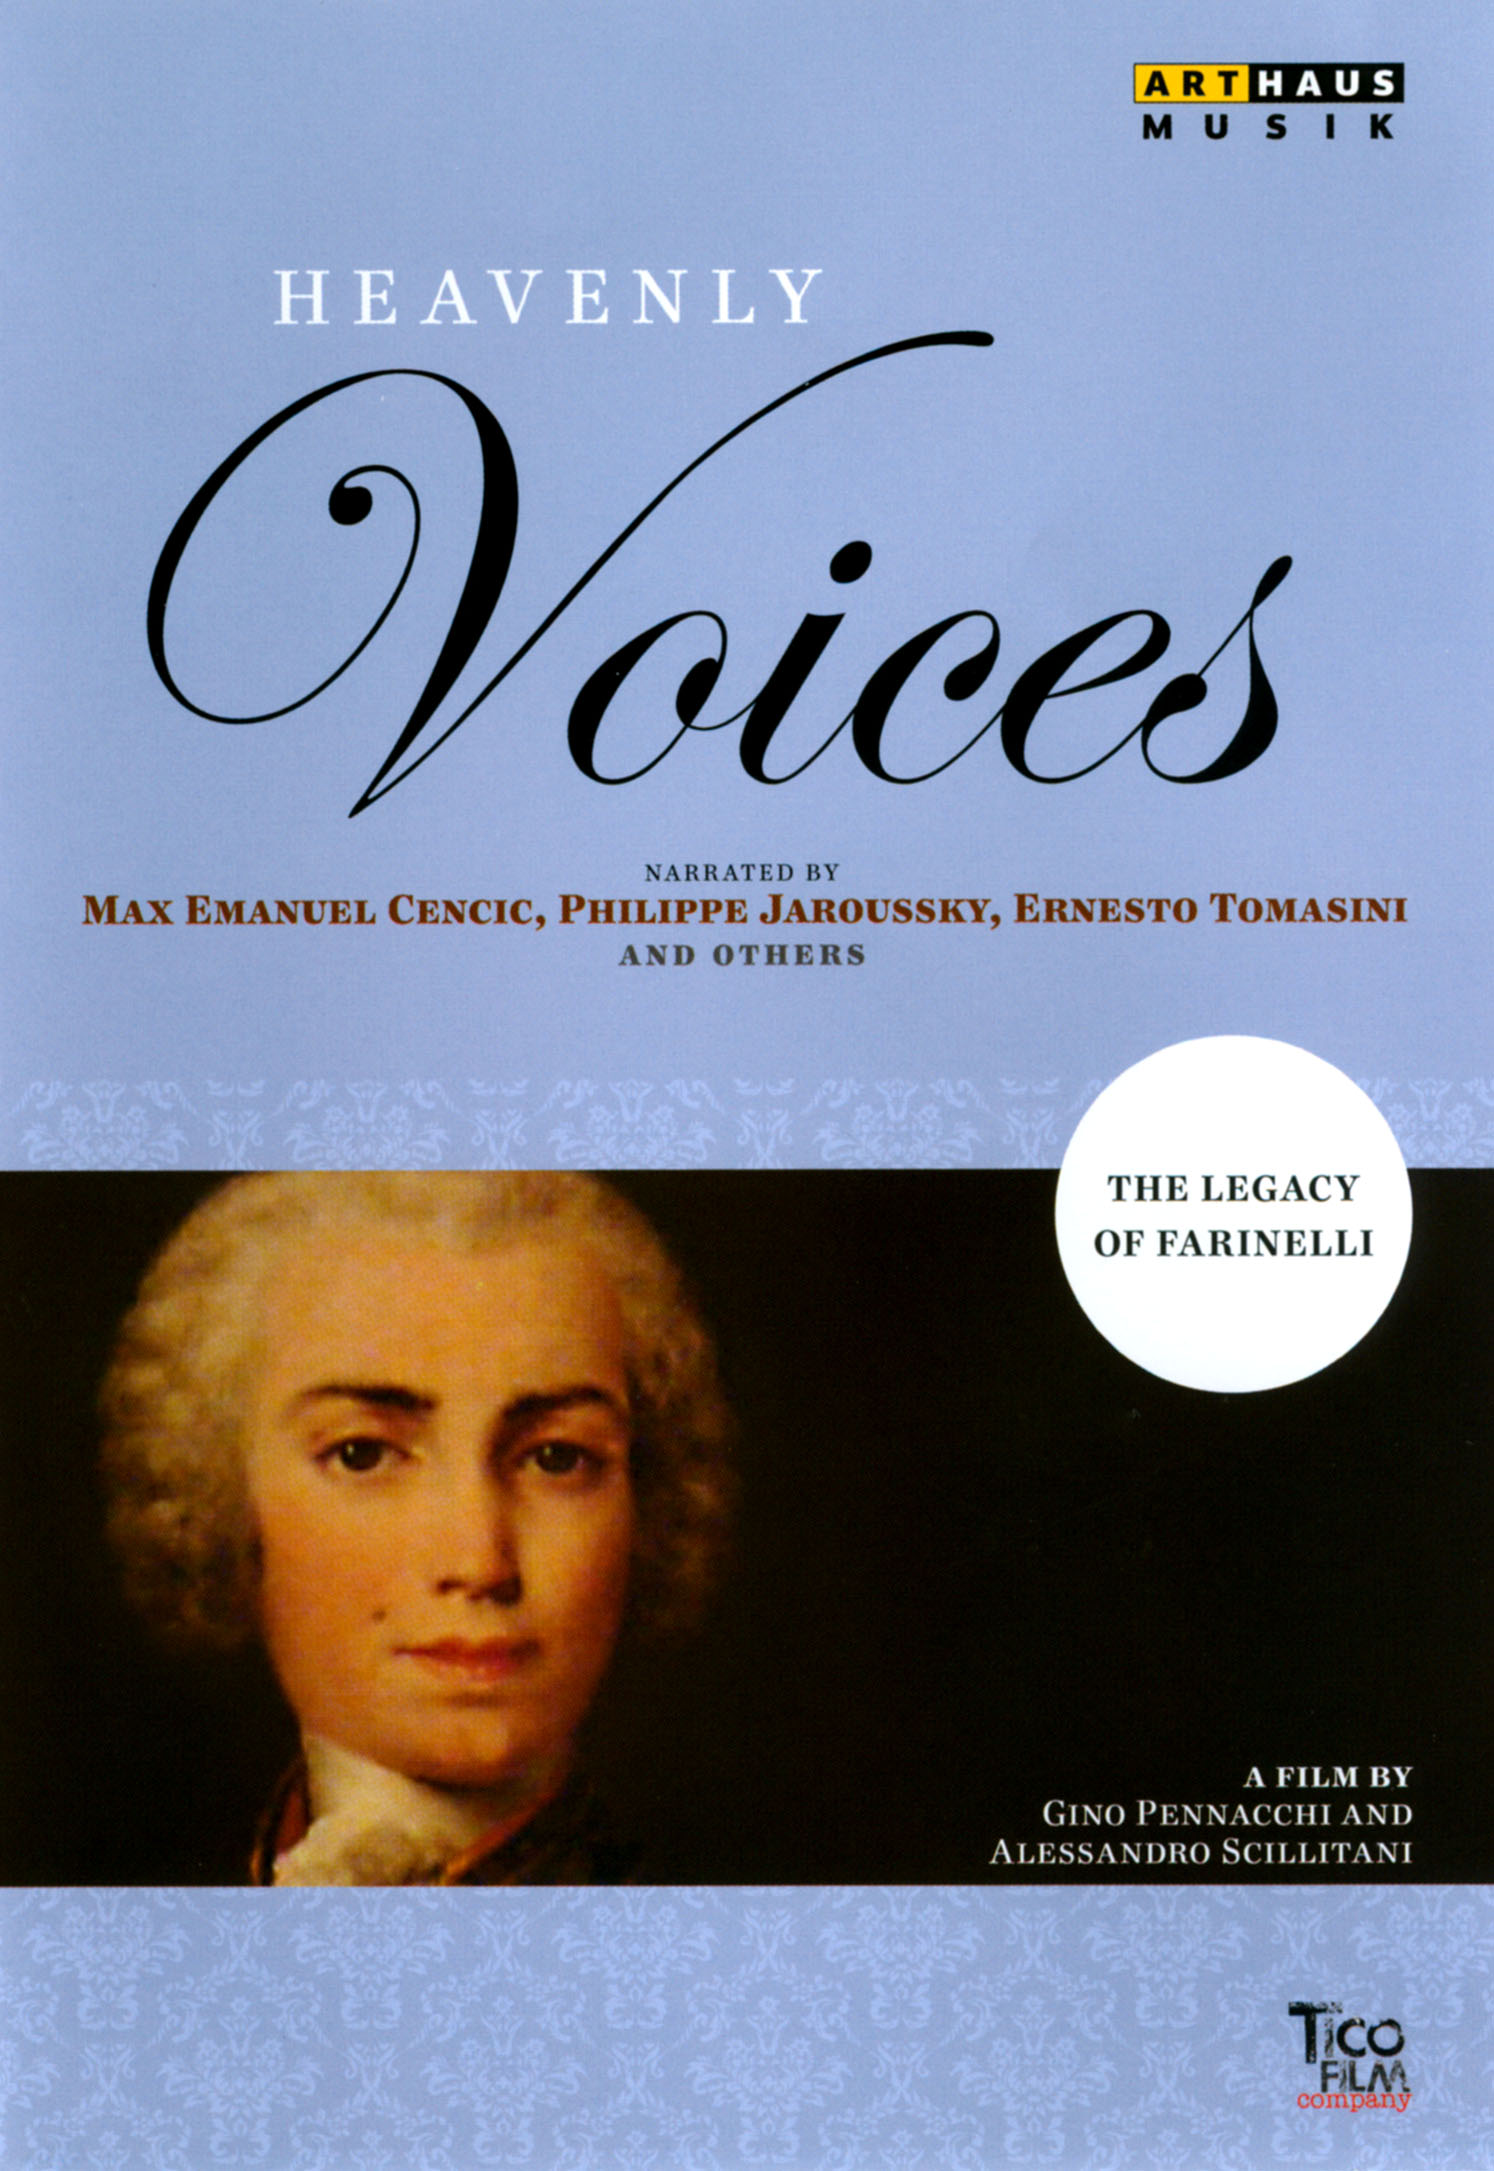 Heavenly Voices: The Legacy of Farinelli